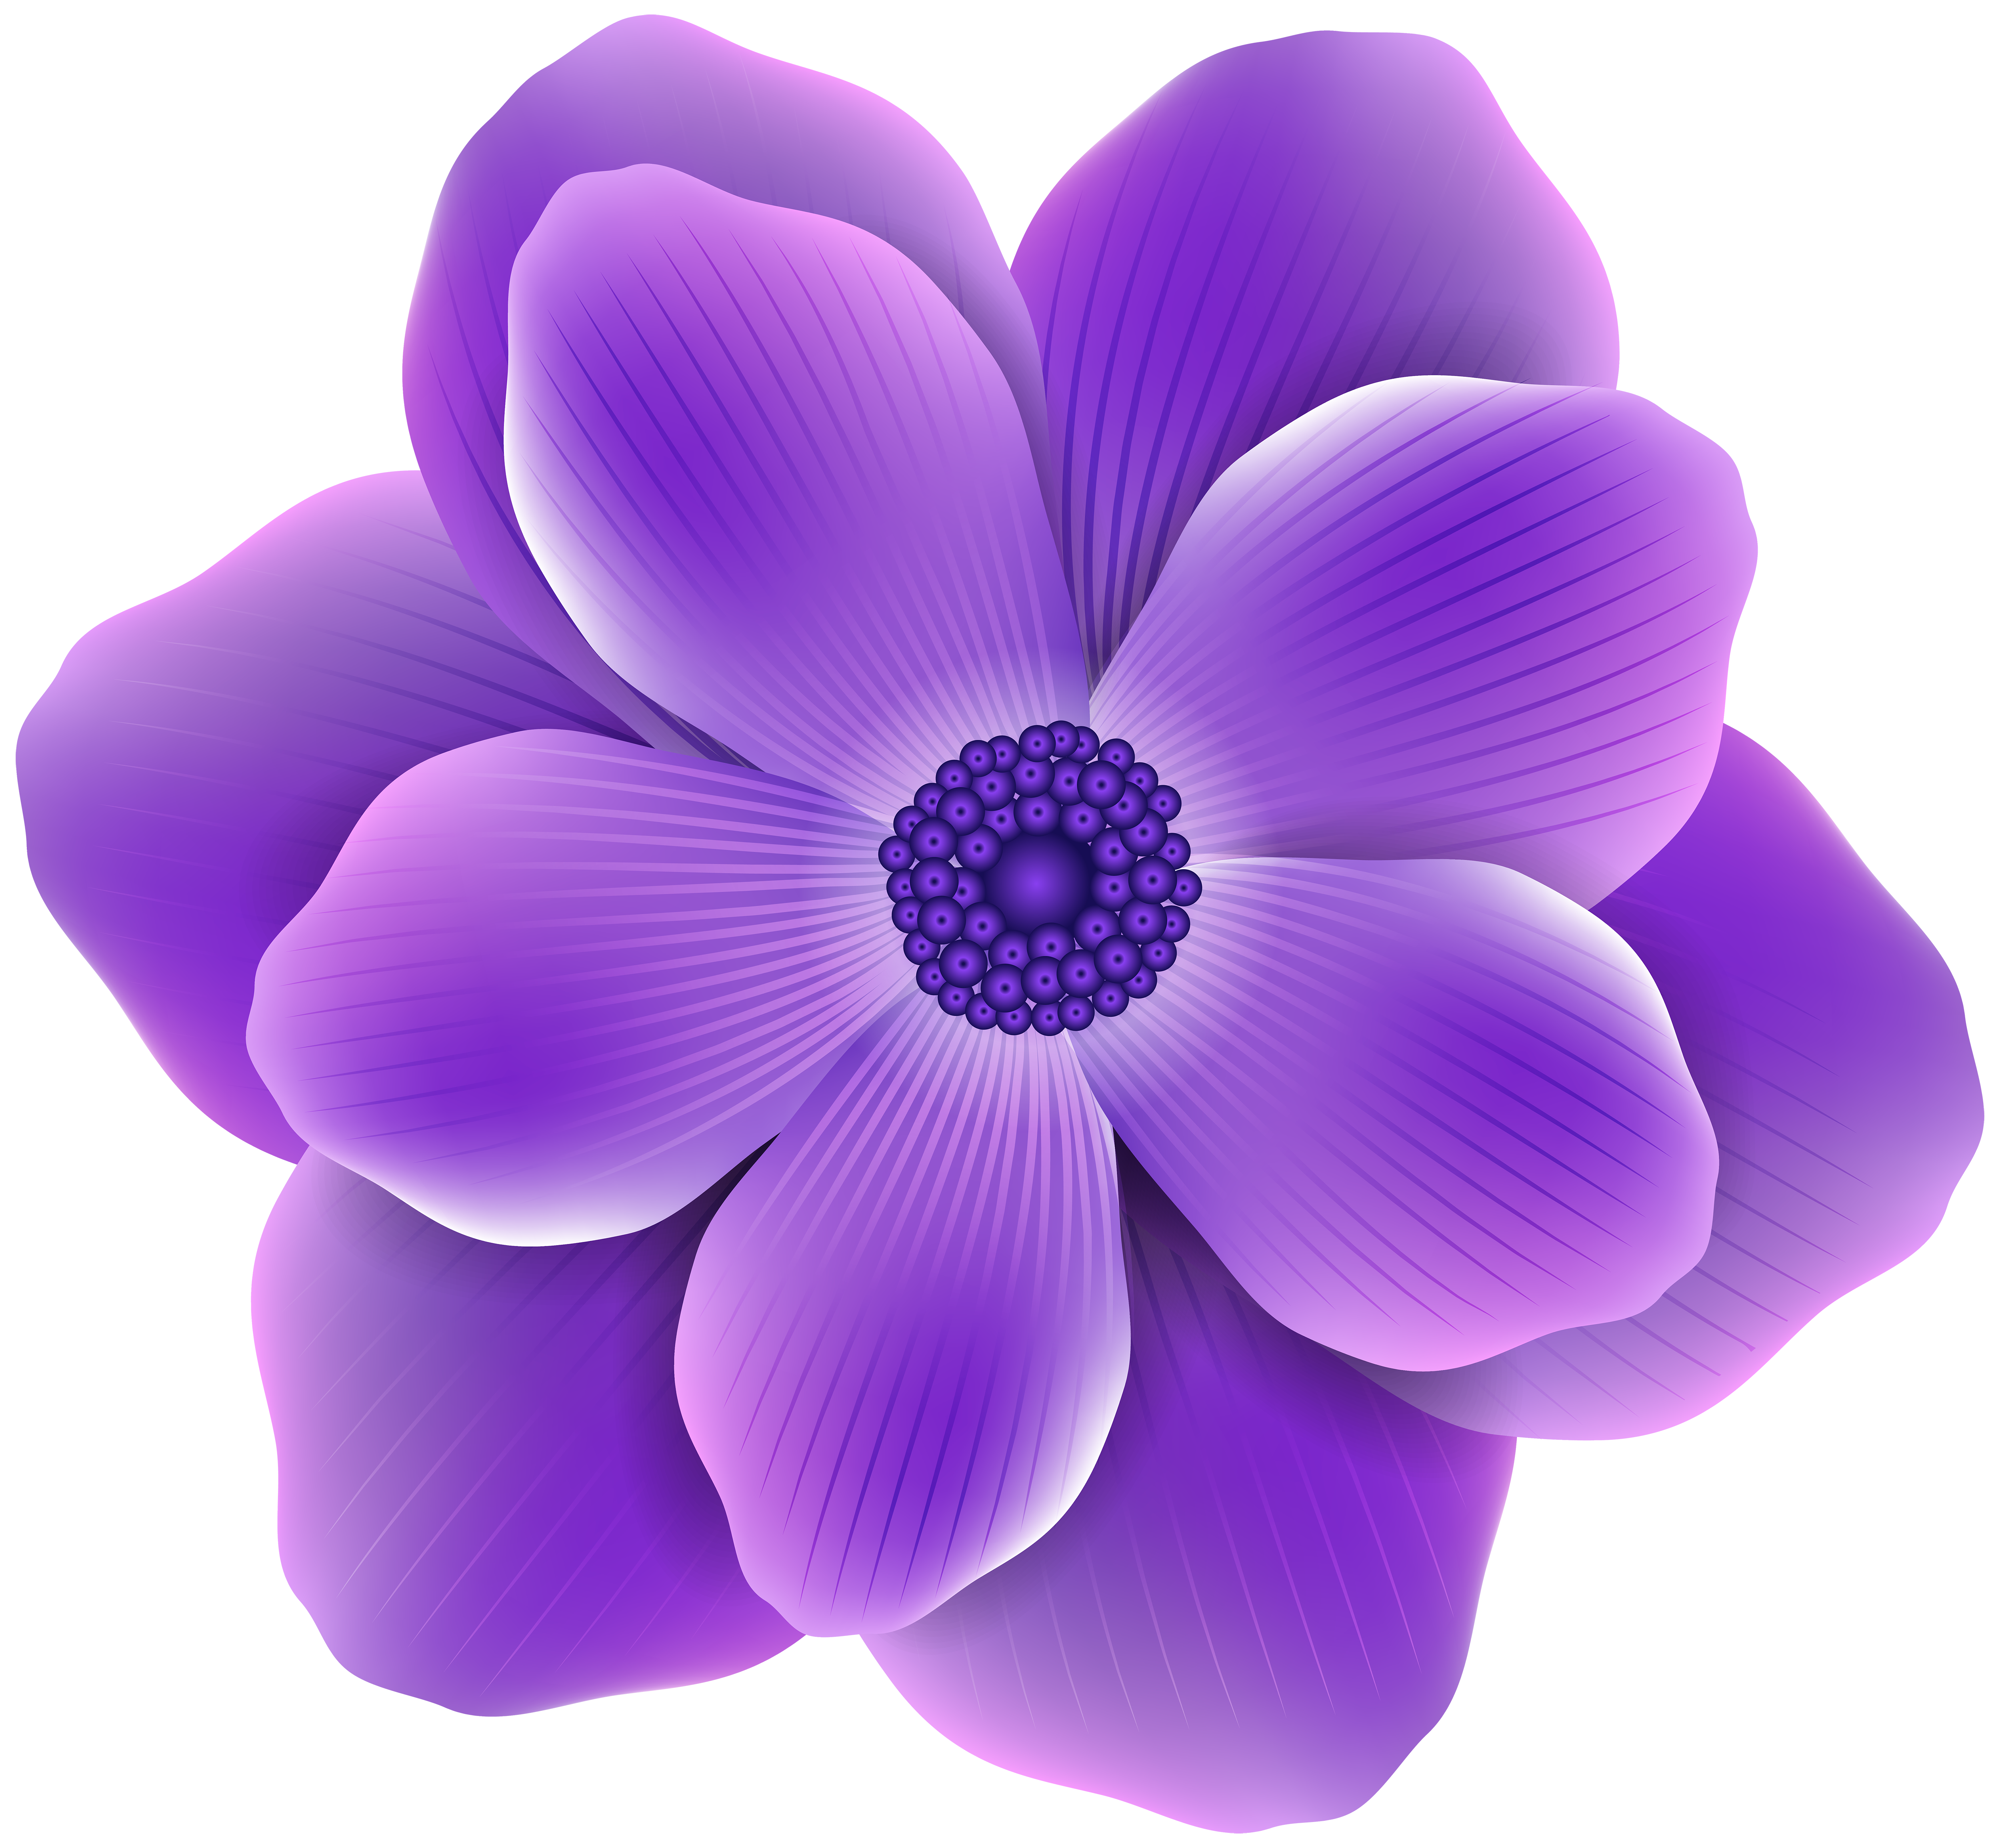 Hydrangea clipart high resolution. Purple flower png clip